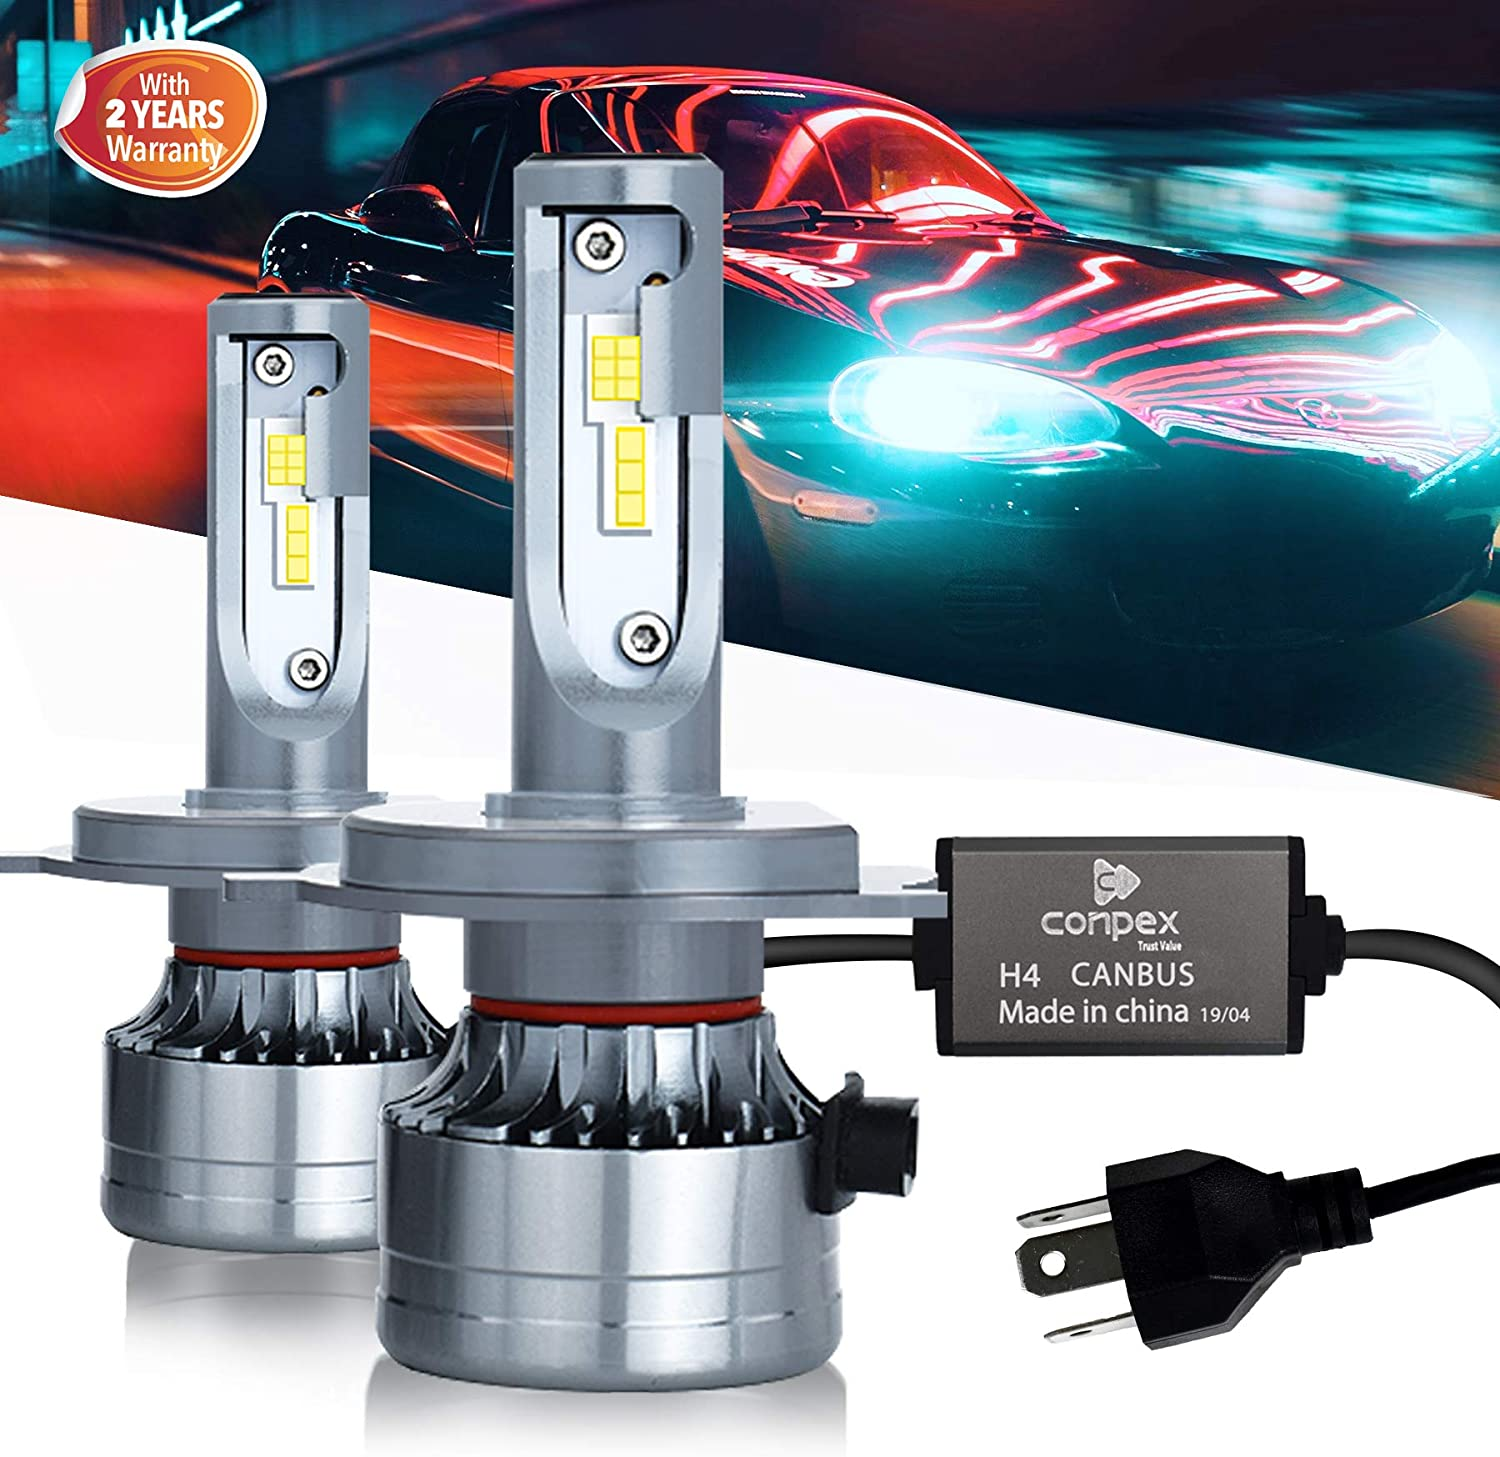 H4/9003/HB2 LED Headlight Bulbs Conversion Kit 11000 LM 6000K Xenon White Light for Hi/Lo Beam 2 Year Warranty